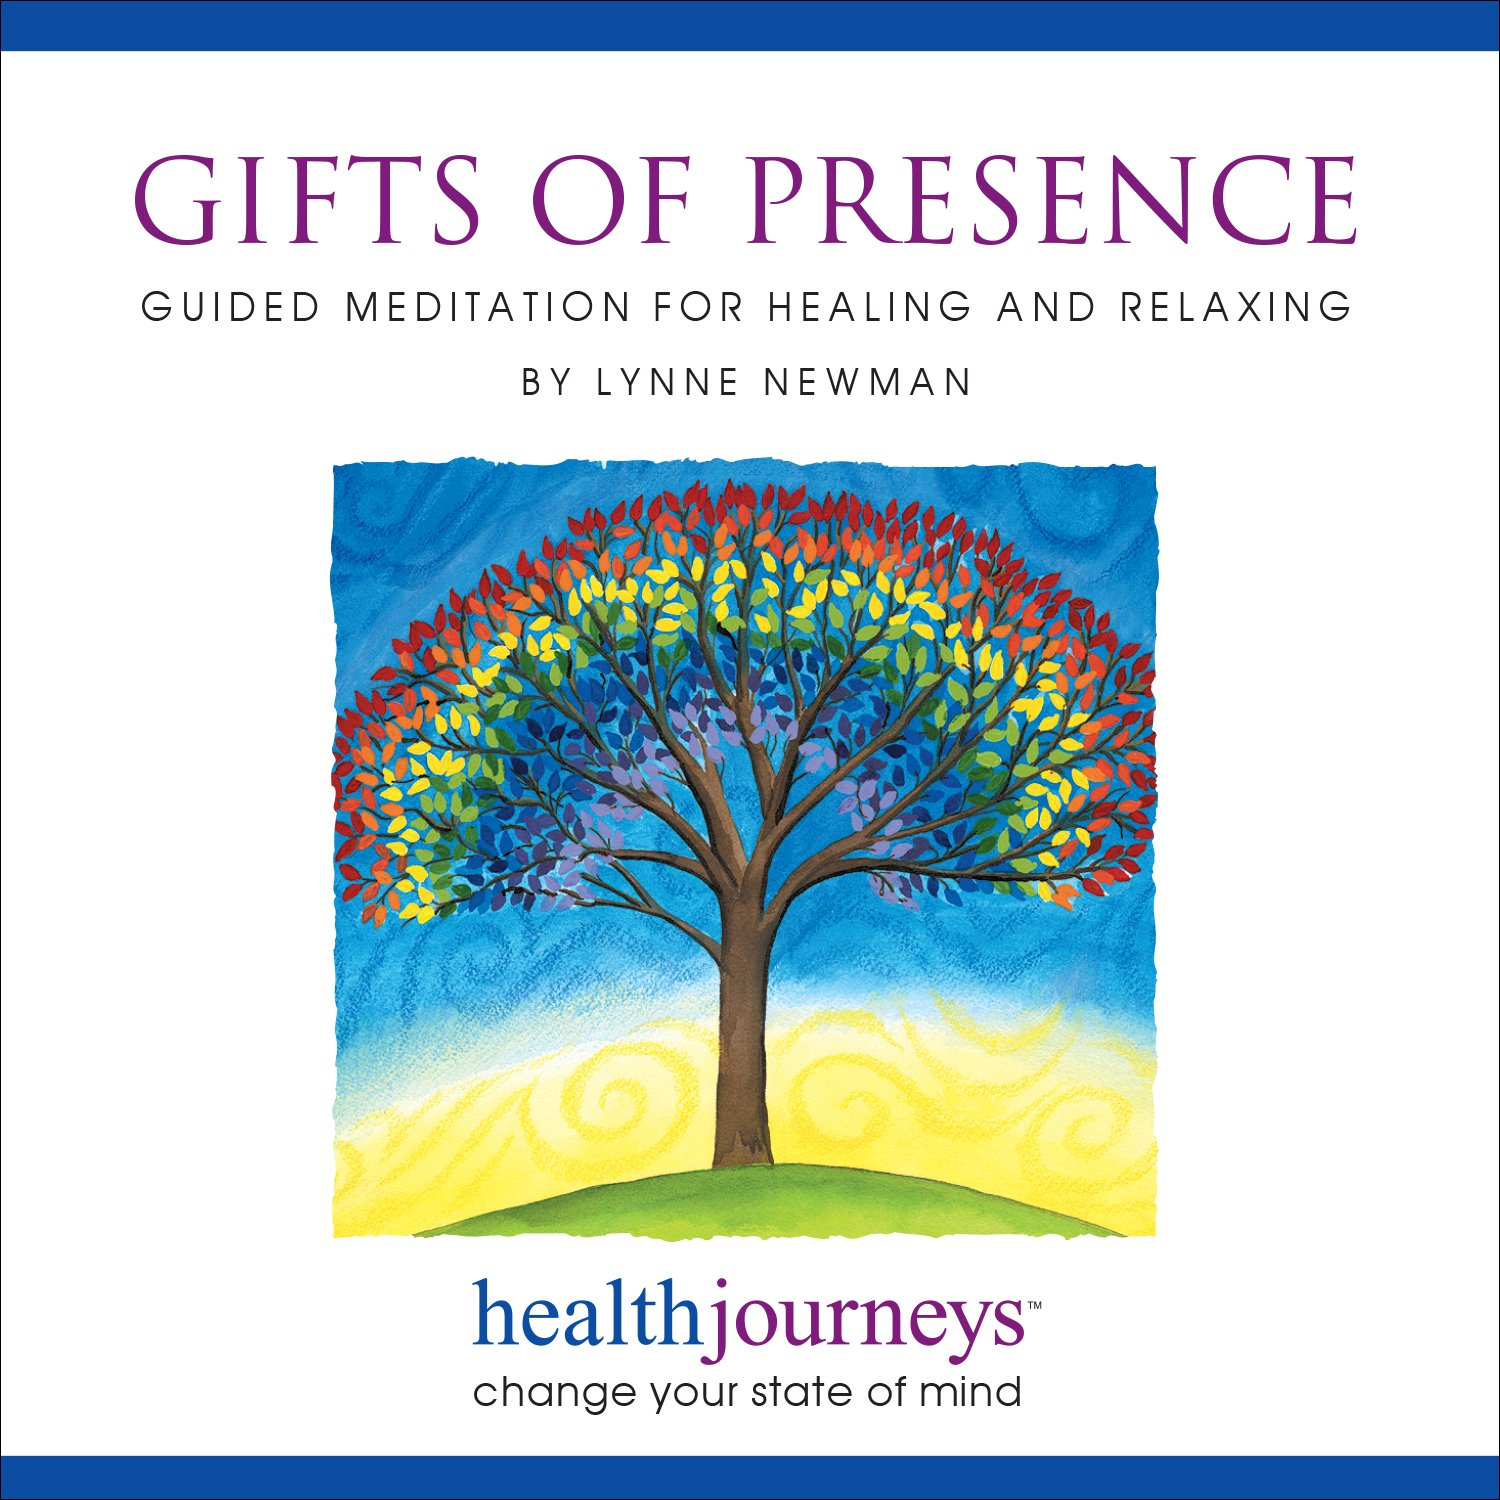 c41a29b11722 Lynne Newman - Gifts Of Presence  Guided Meditation for Healing and  Relaxation- An Uplifting Journey through Your Life